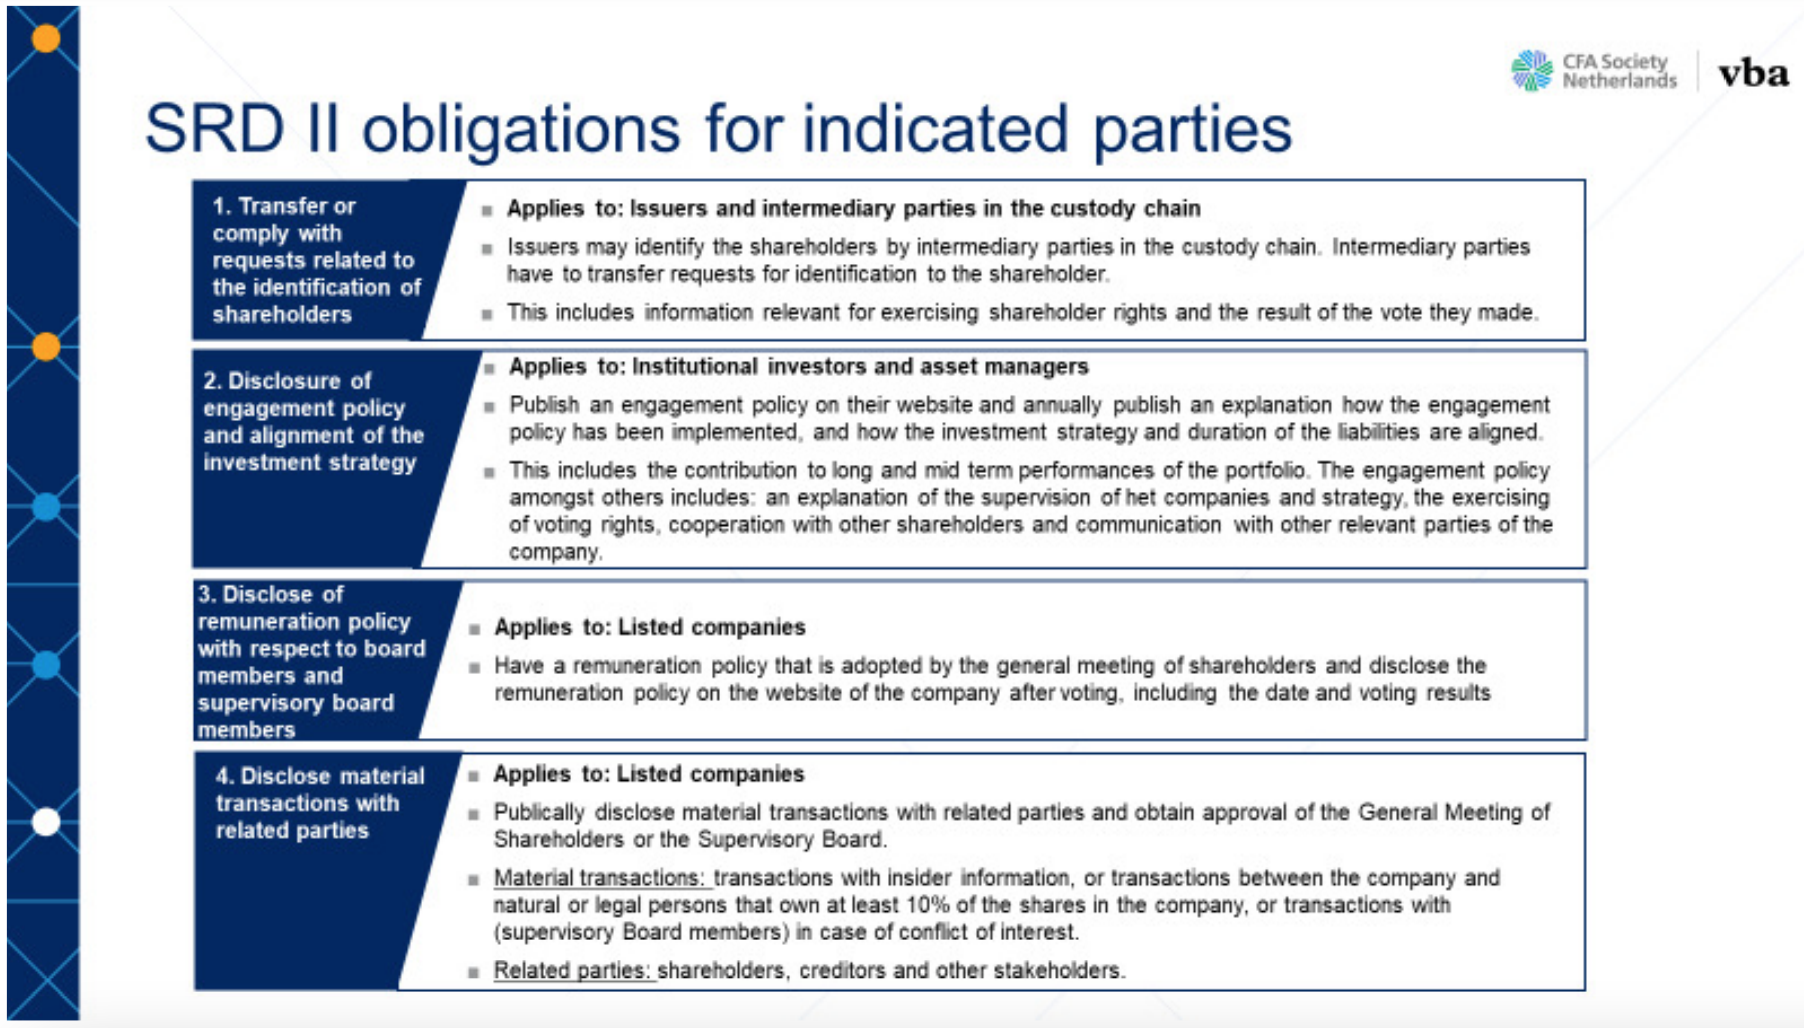 SRD II obligations for indicated parties, Source: CFA Society Netherlands and VBA